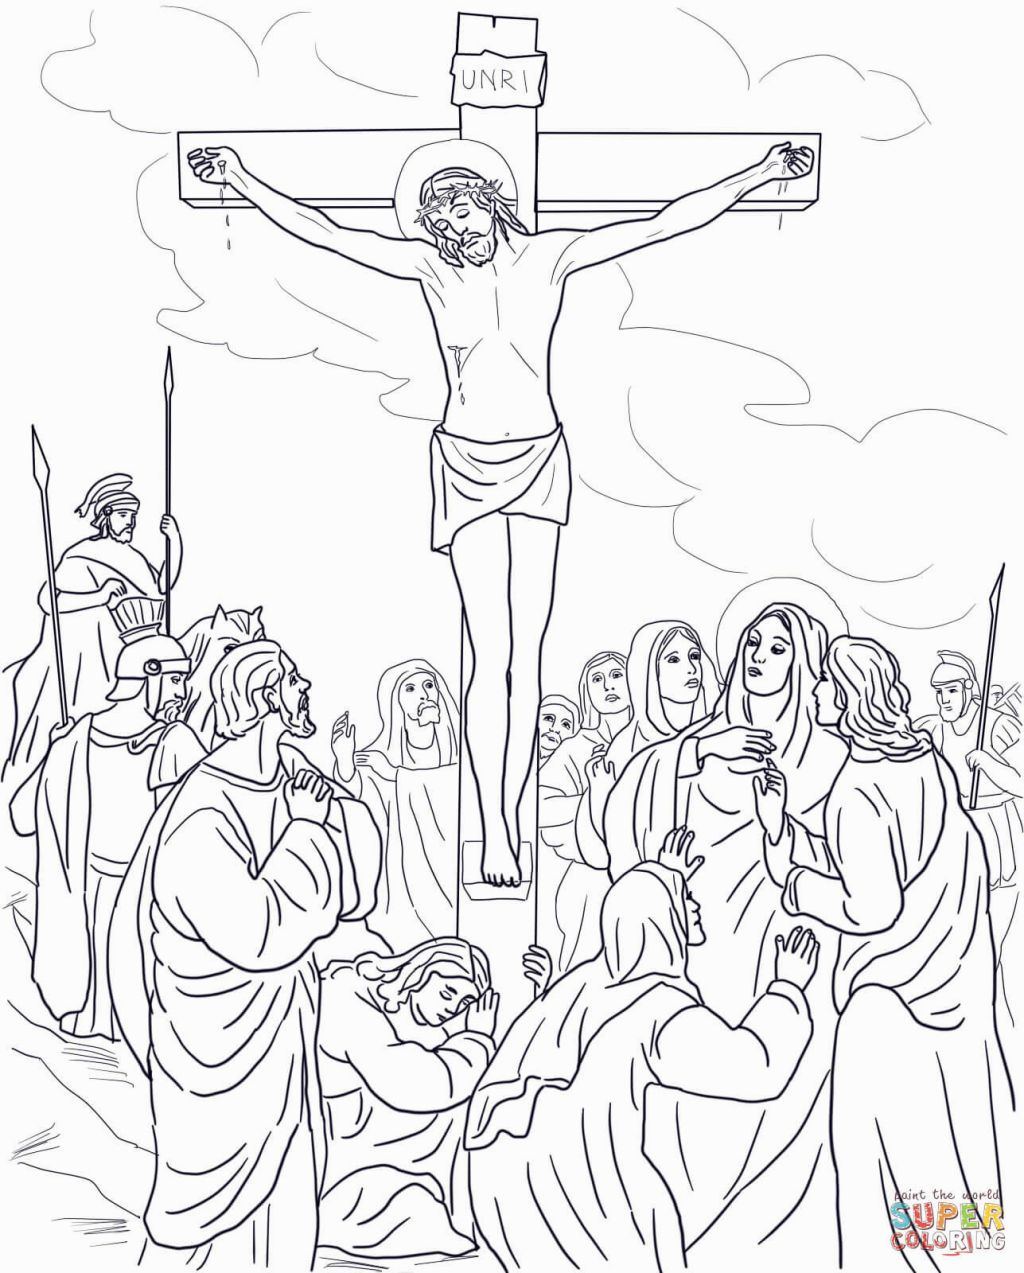 Jesus On The Cross Coloring Pages | relegious items | Pinterest